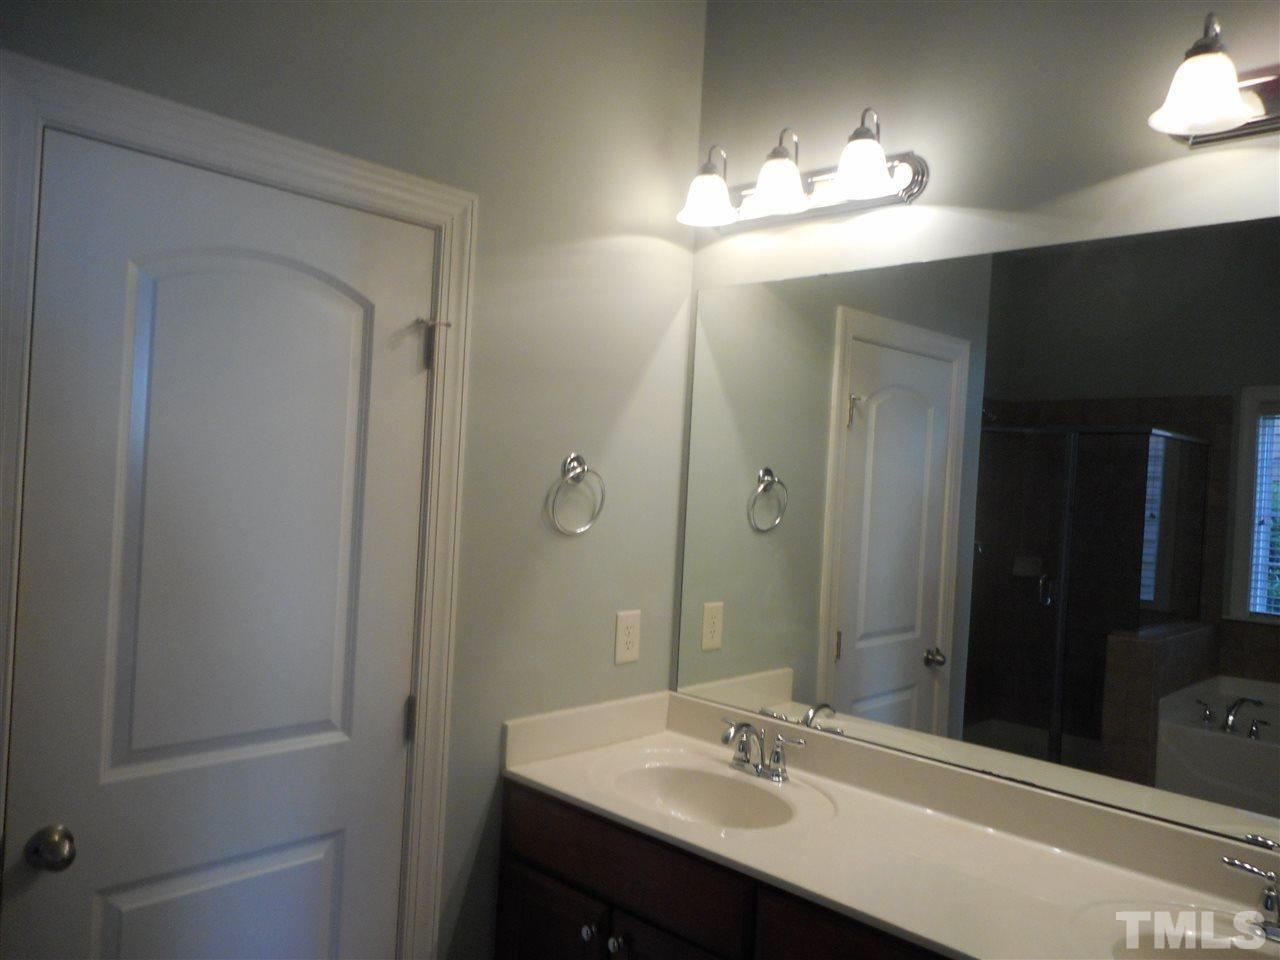 Bathroom Light Fixtures Raleigh Nc 835 historian st, raleigh, nc 27603 mls# 2116145 - movoto